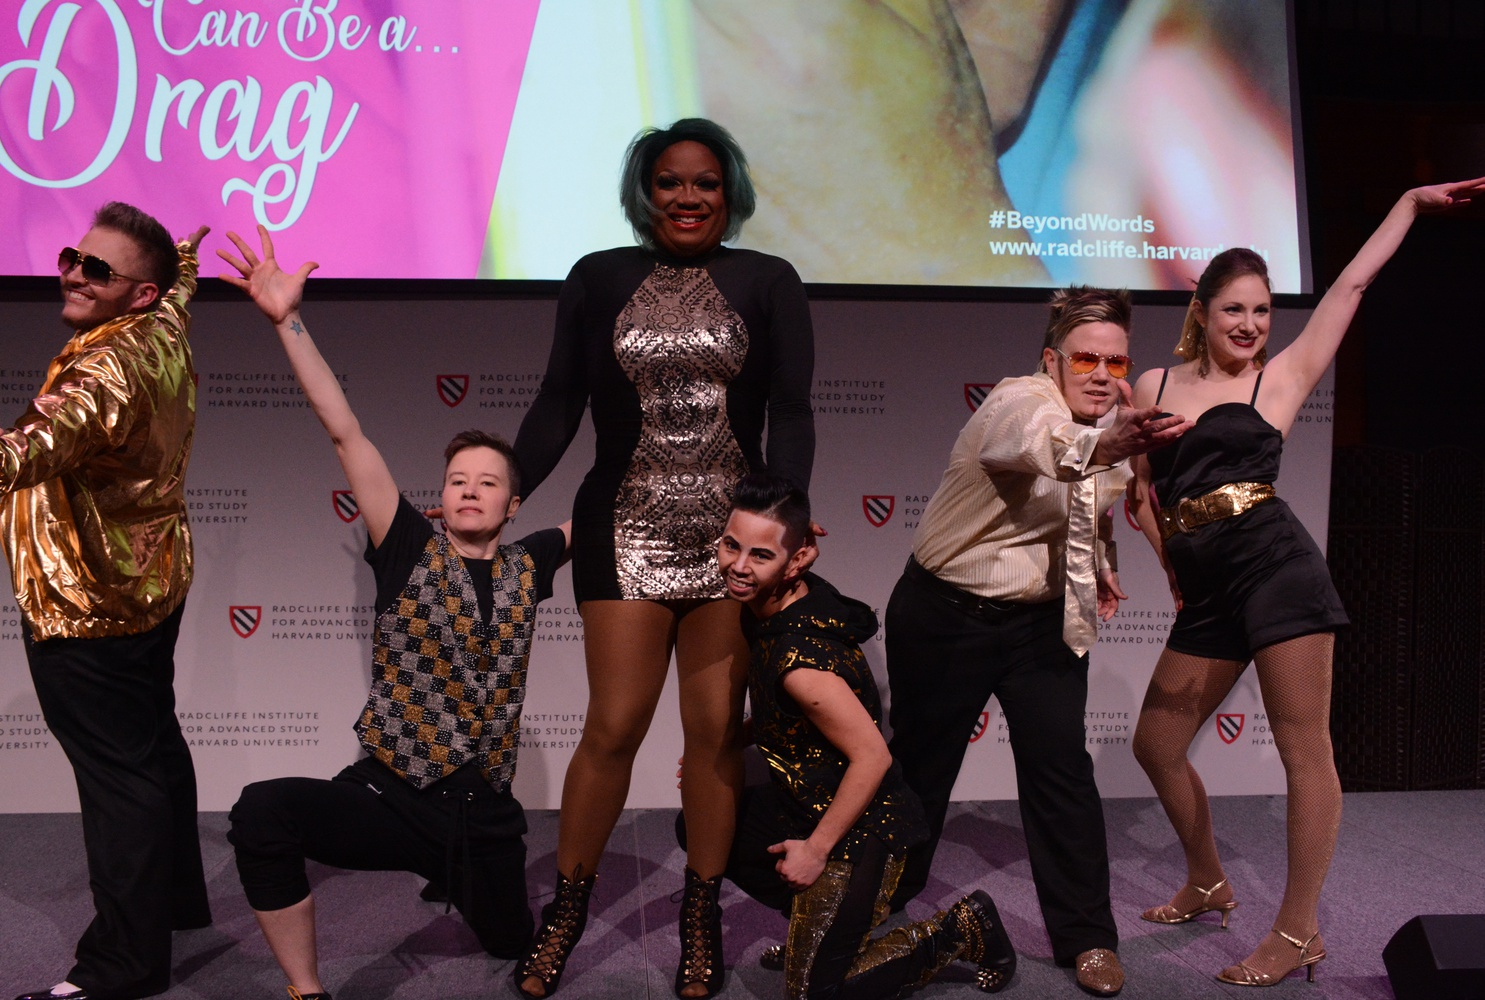 """Drag performers from the award-winning documentary, """"Kings, Queens, & In-Betweens,"""" put on a show in the Knafel Center."""